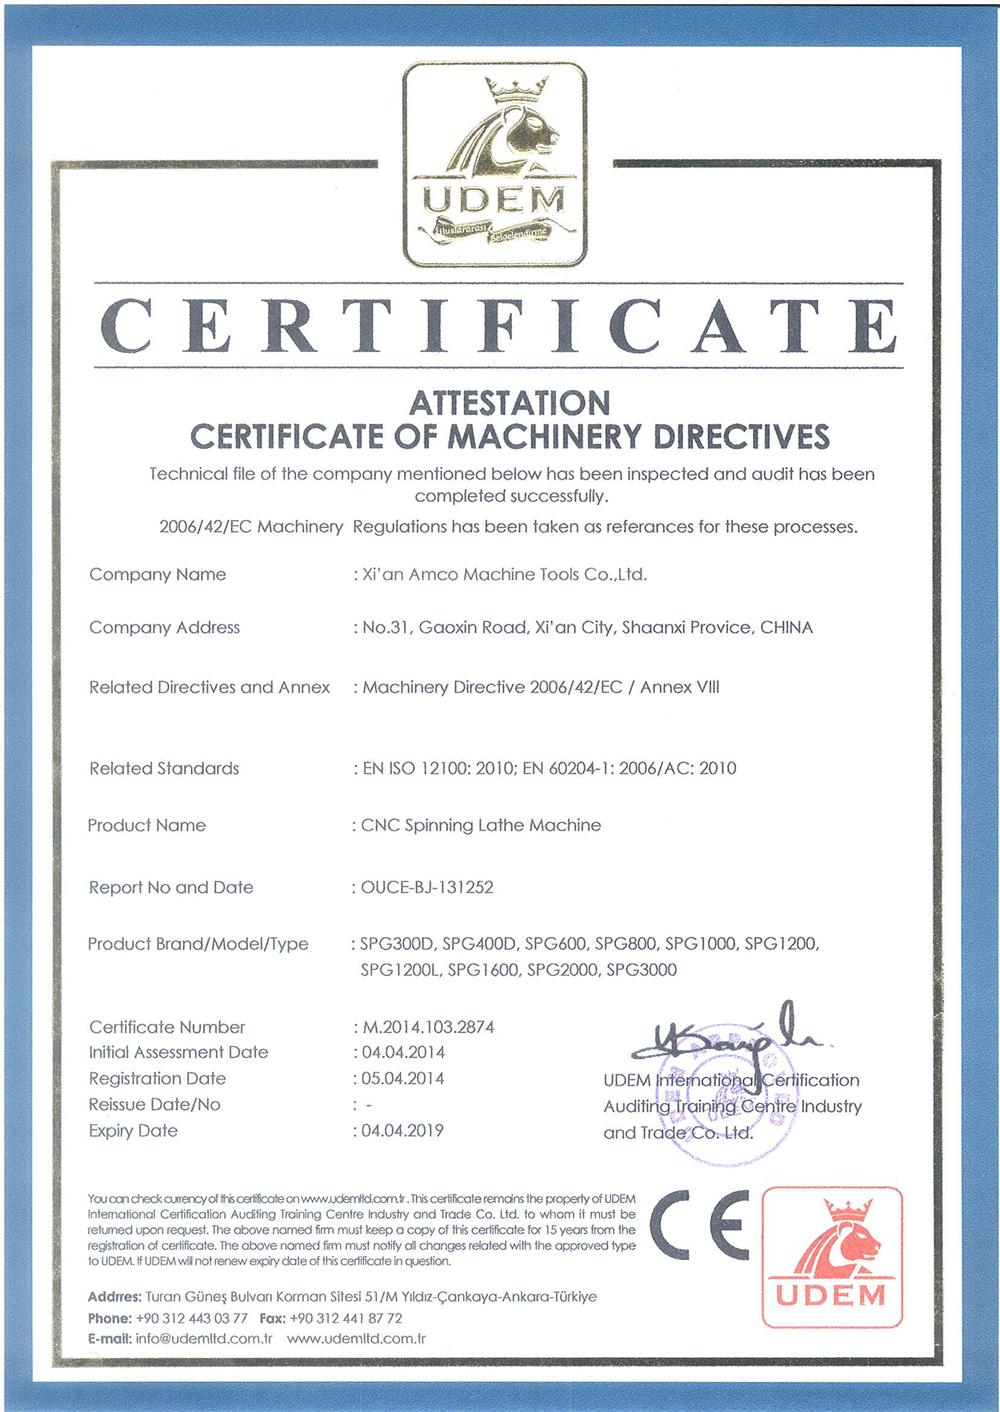 Certificate of machinery directives honner xian amco machine certificate of machinery directives 1betcityfo Gallery